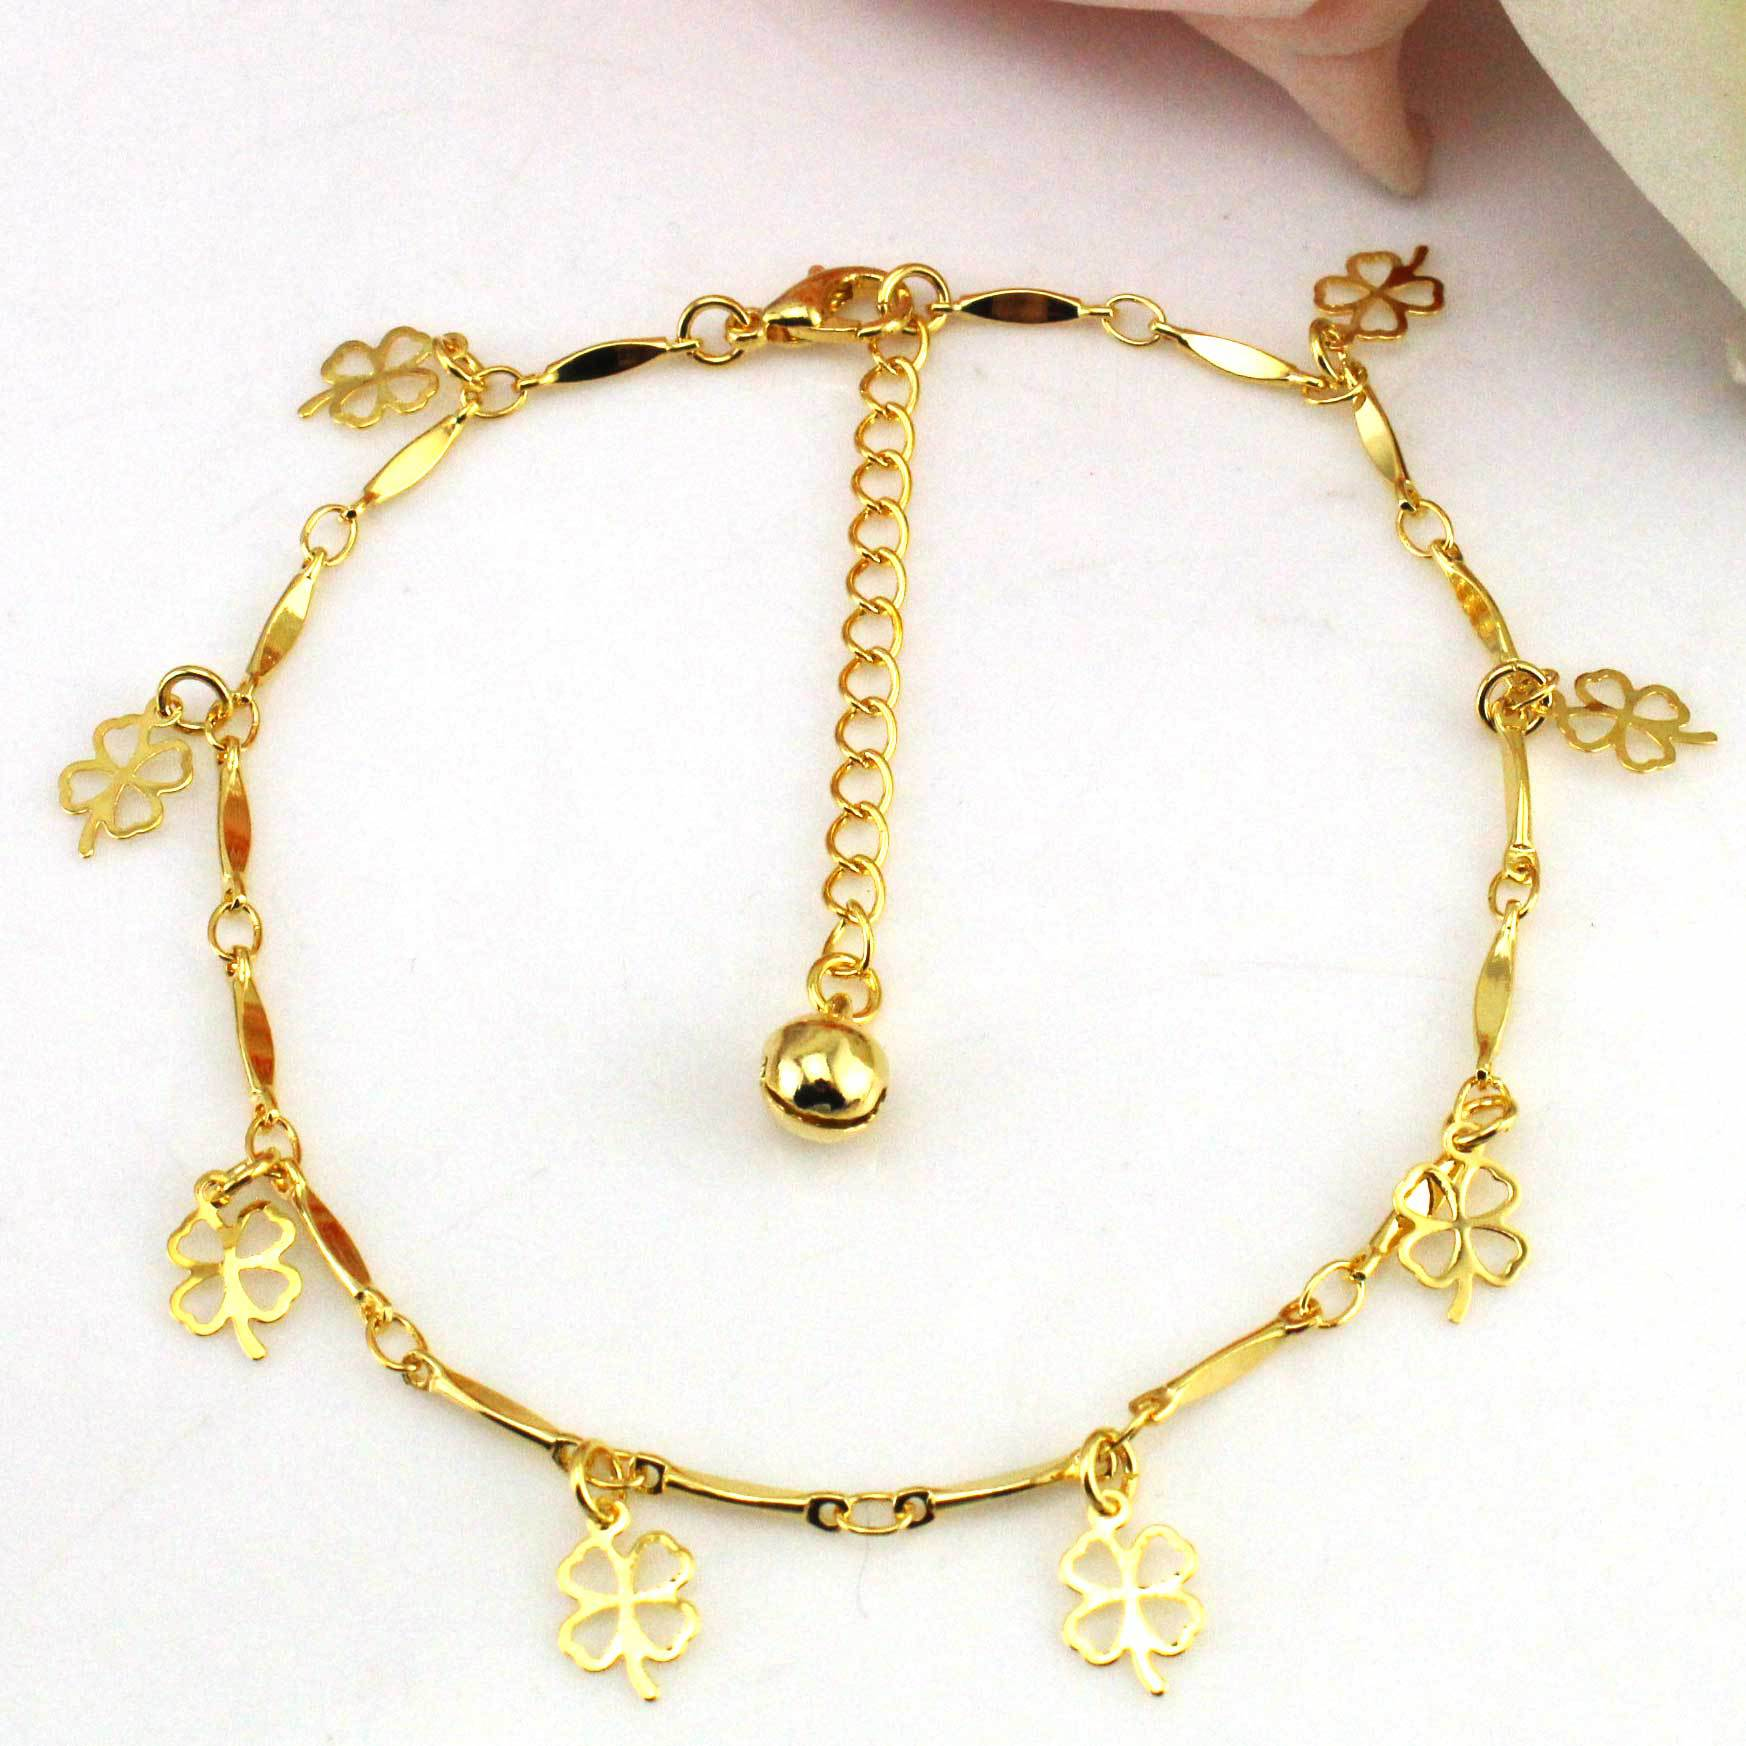 pulseras anklet bracelets bracelet cute item ankle for leg clover in pretty anklets enkelbandje from foot gold jewelry mujer women tornozeleira tobilleras